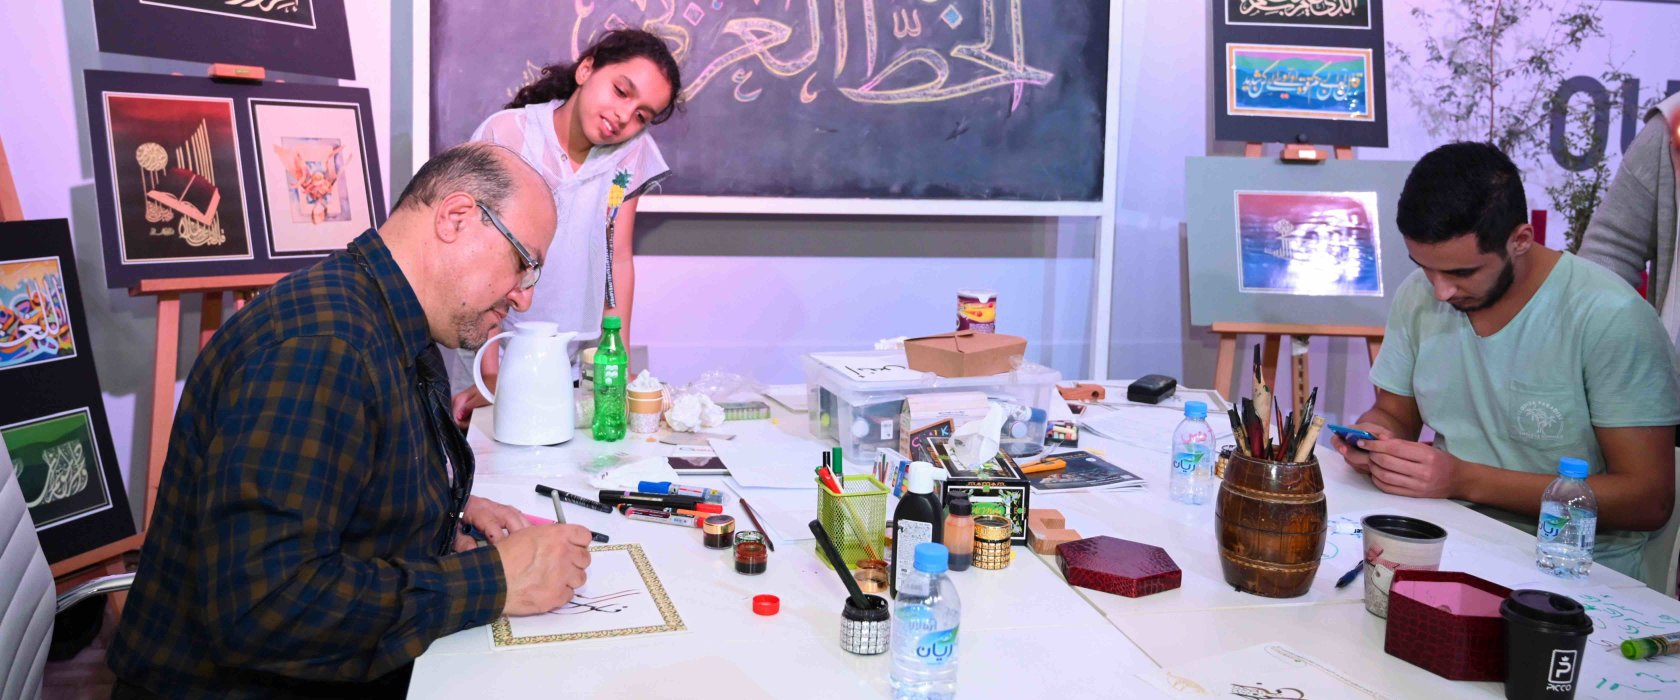 Darb Al Saai visitors discover the beauty of Arabic calligraphy